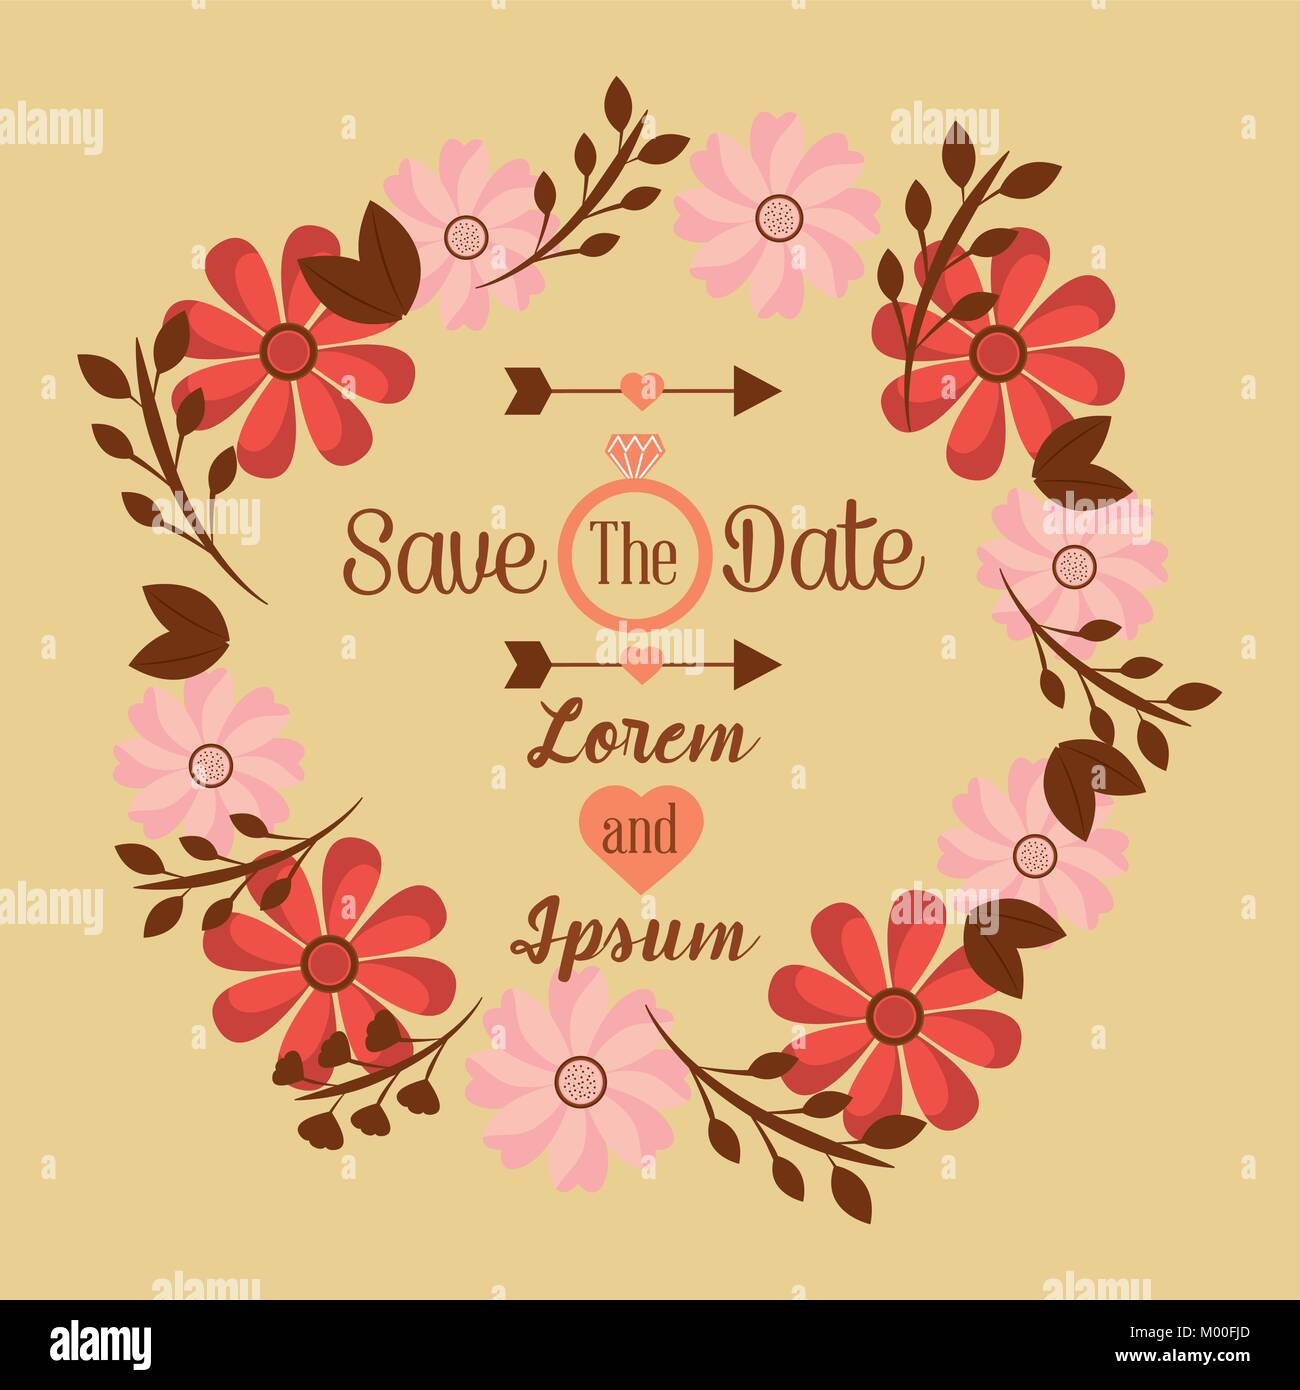 save the date wedding invitation design template floral frame Stock ...